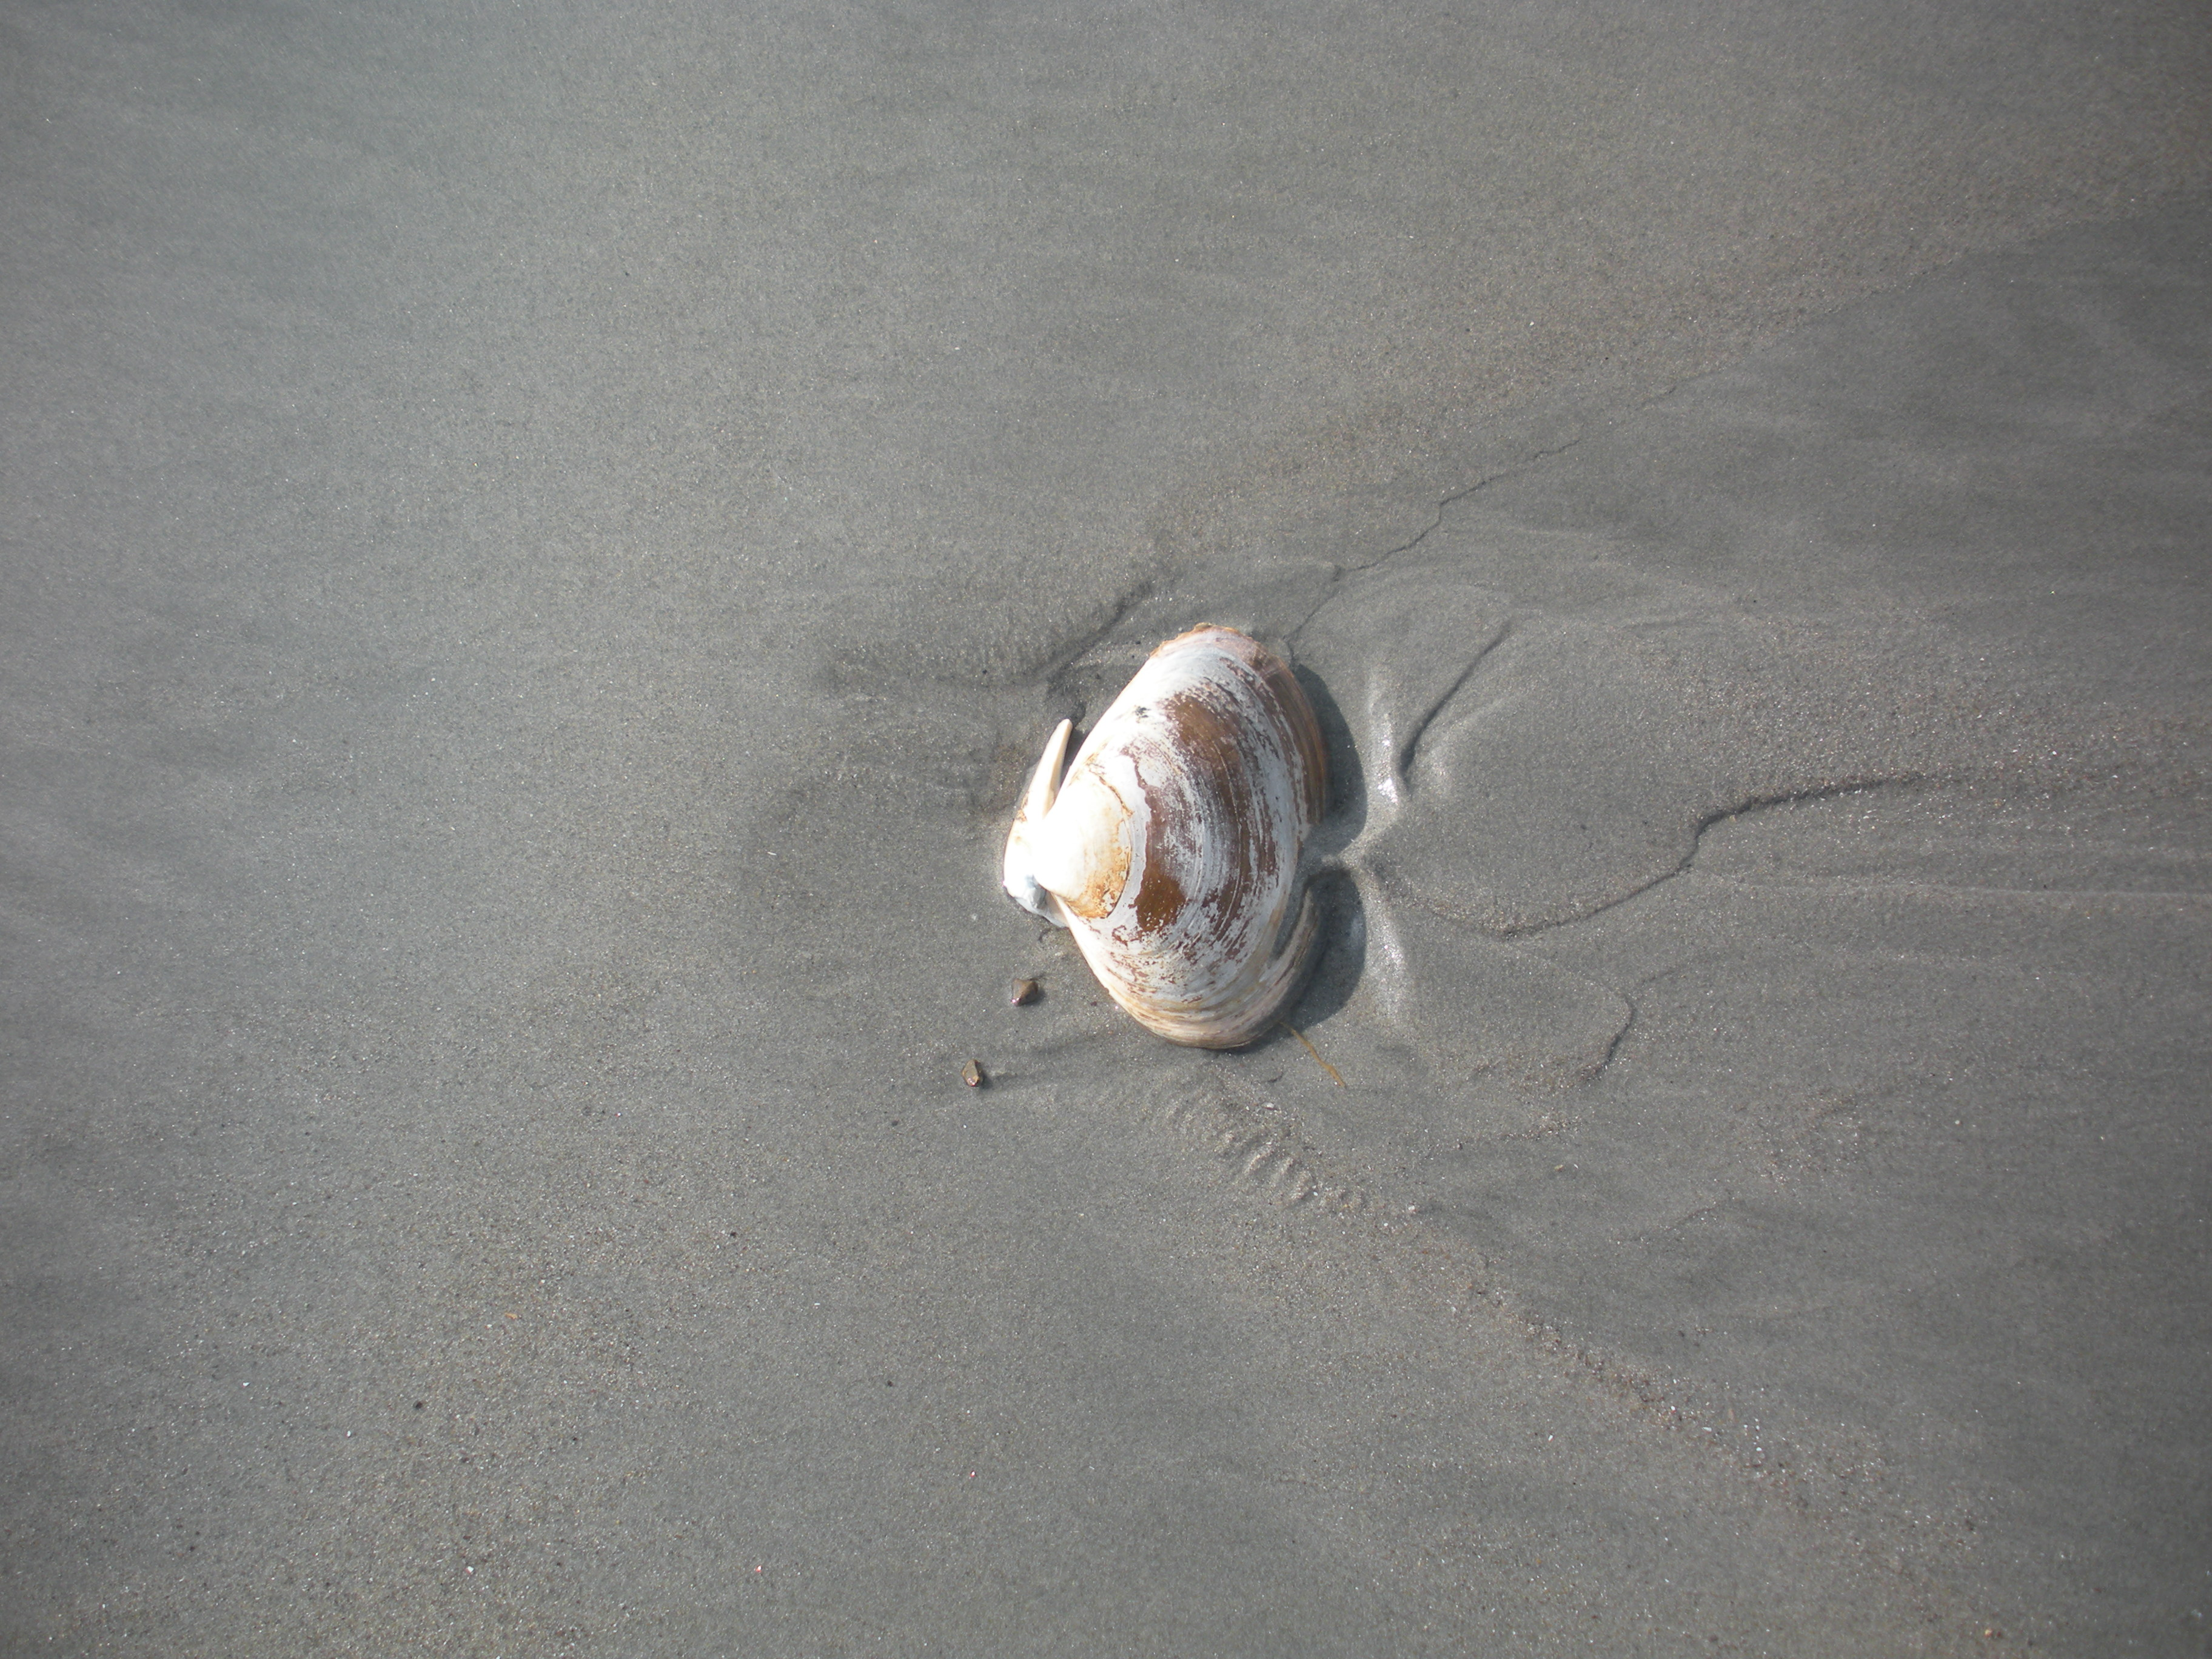 I saved this one, more clams for me!